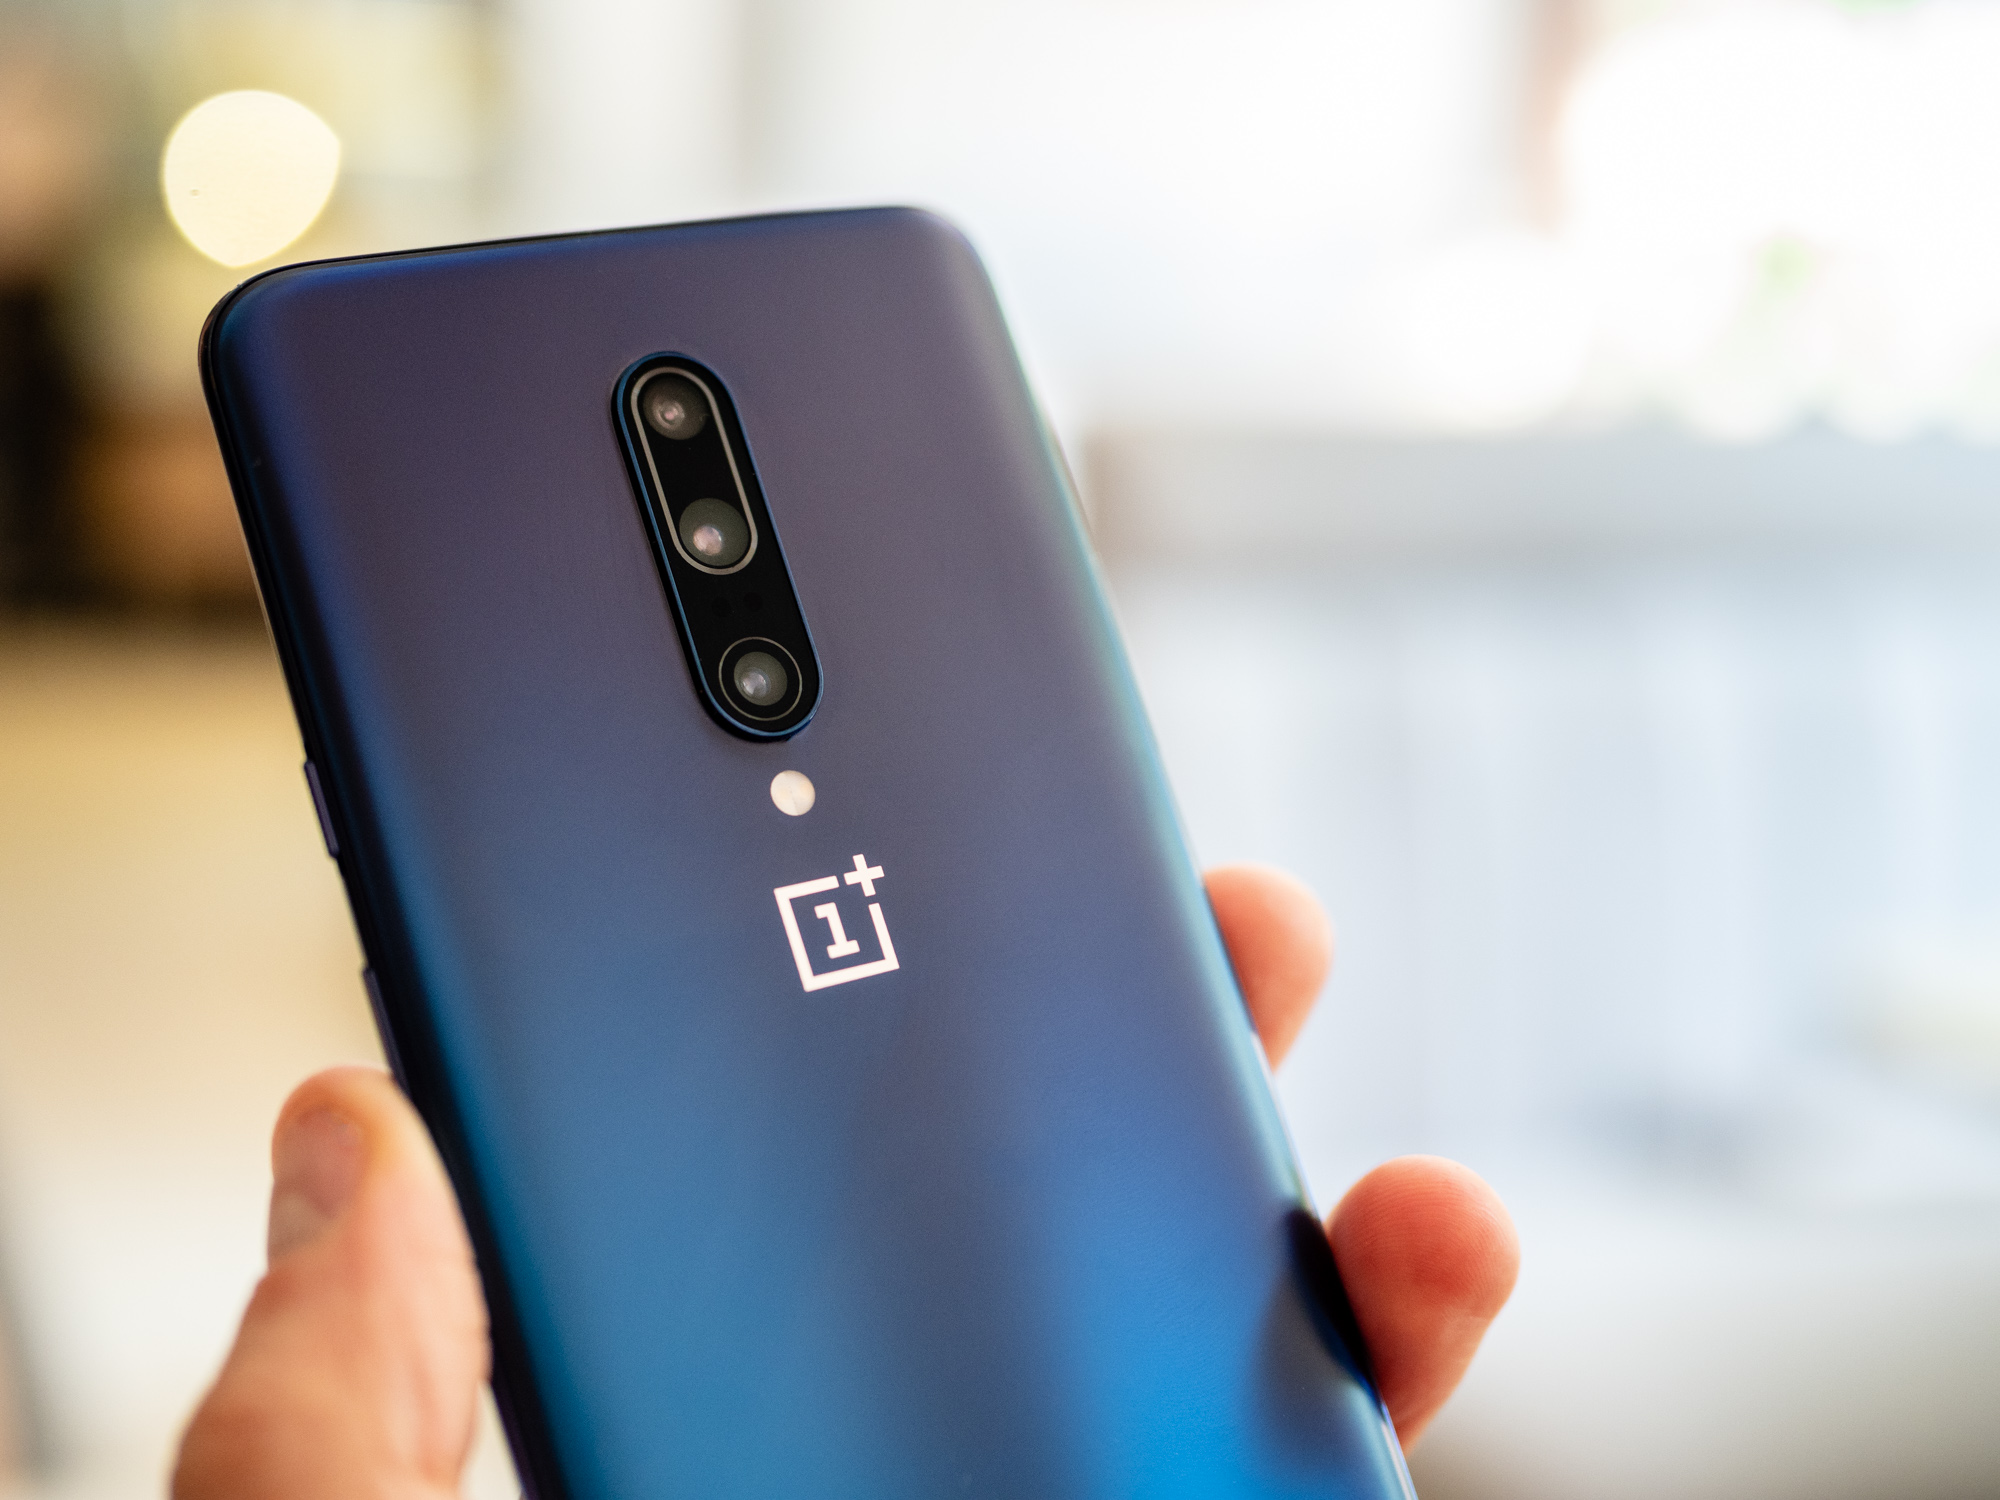 OnePlus 7 Pro – Test a great smartphone with Android